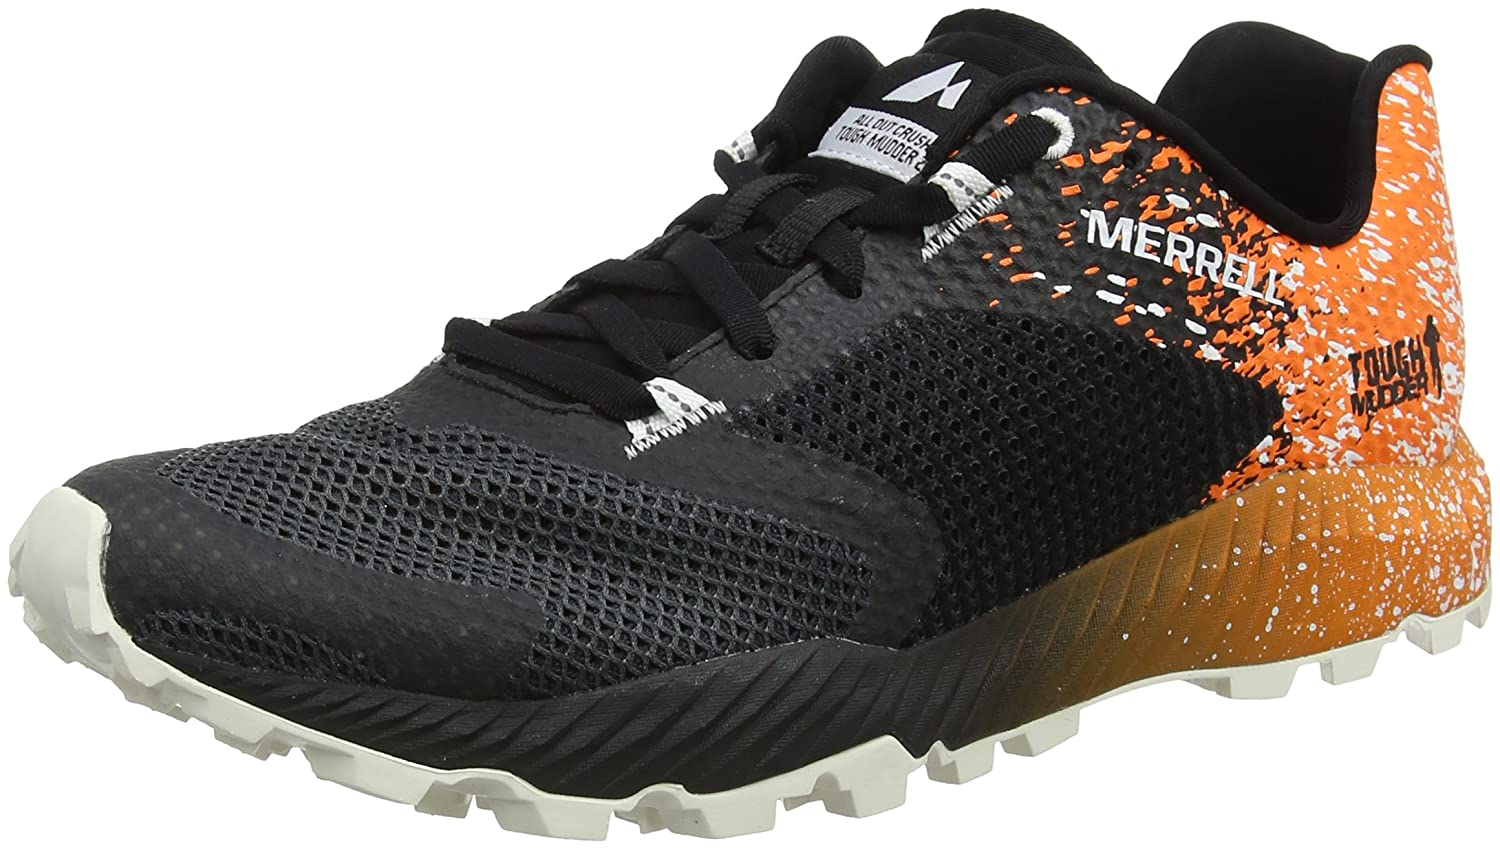 TALLA 42 EU. Merrell All out Crush Tough Mudder 2, Zapatillas de Running para Asfalto para Hombre